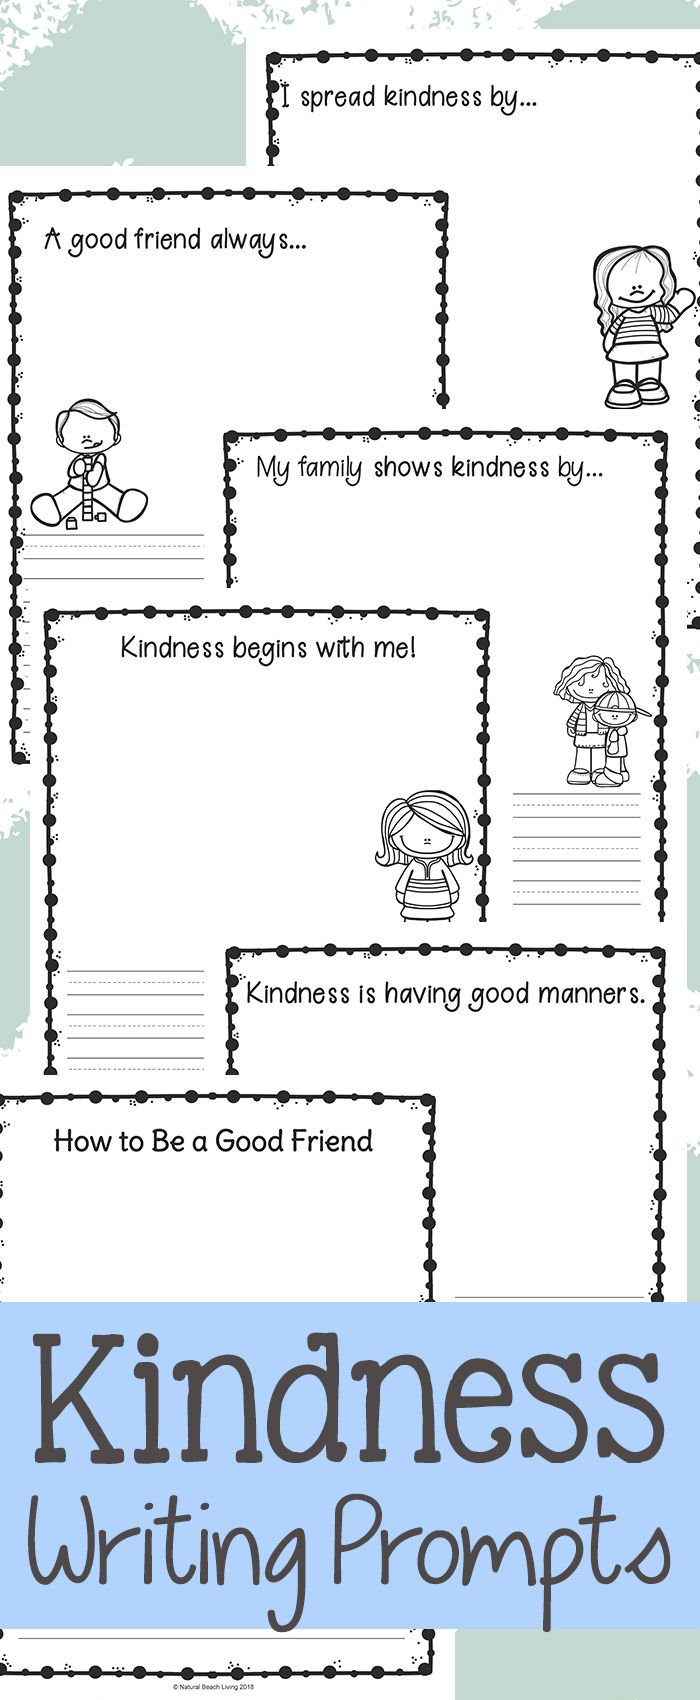 Everything You Ever Wanted To Know About Random Acts Of Kindness Writing Prompts For Kids Kindergarten Writing Kindergarten Writing Prompts [ 1700 x 700 Pixel ]